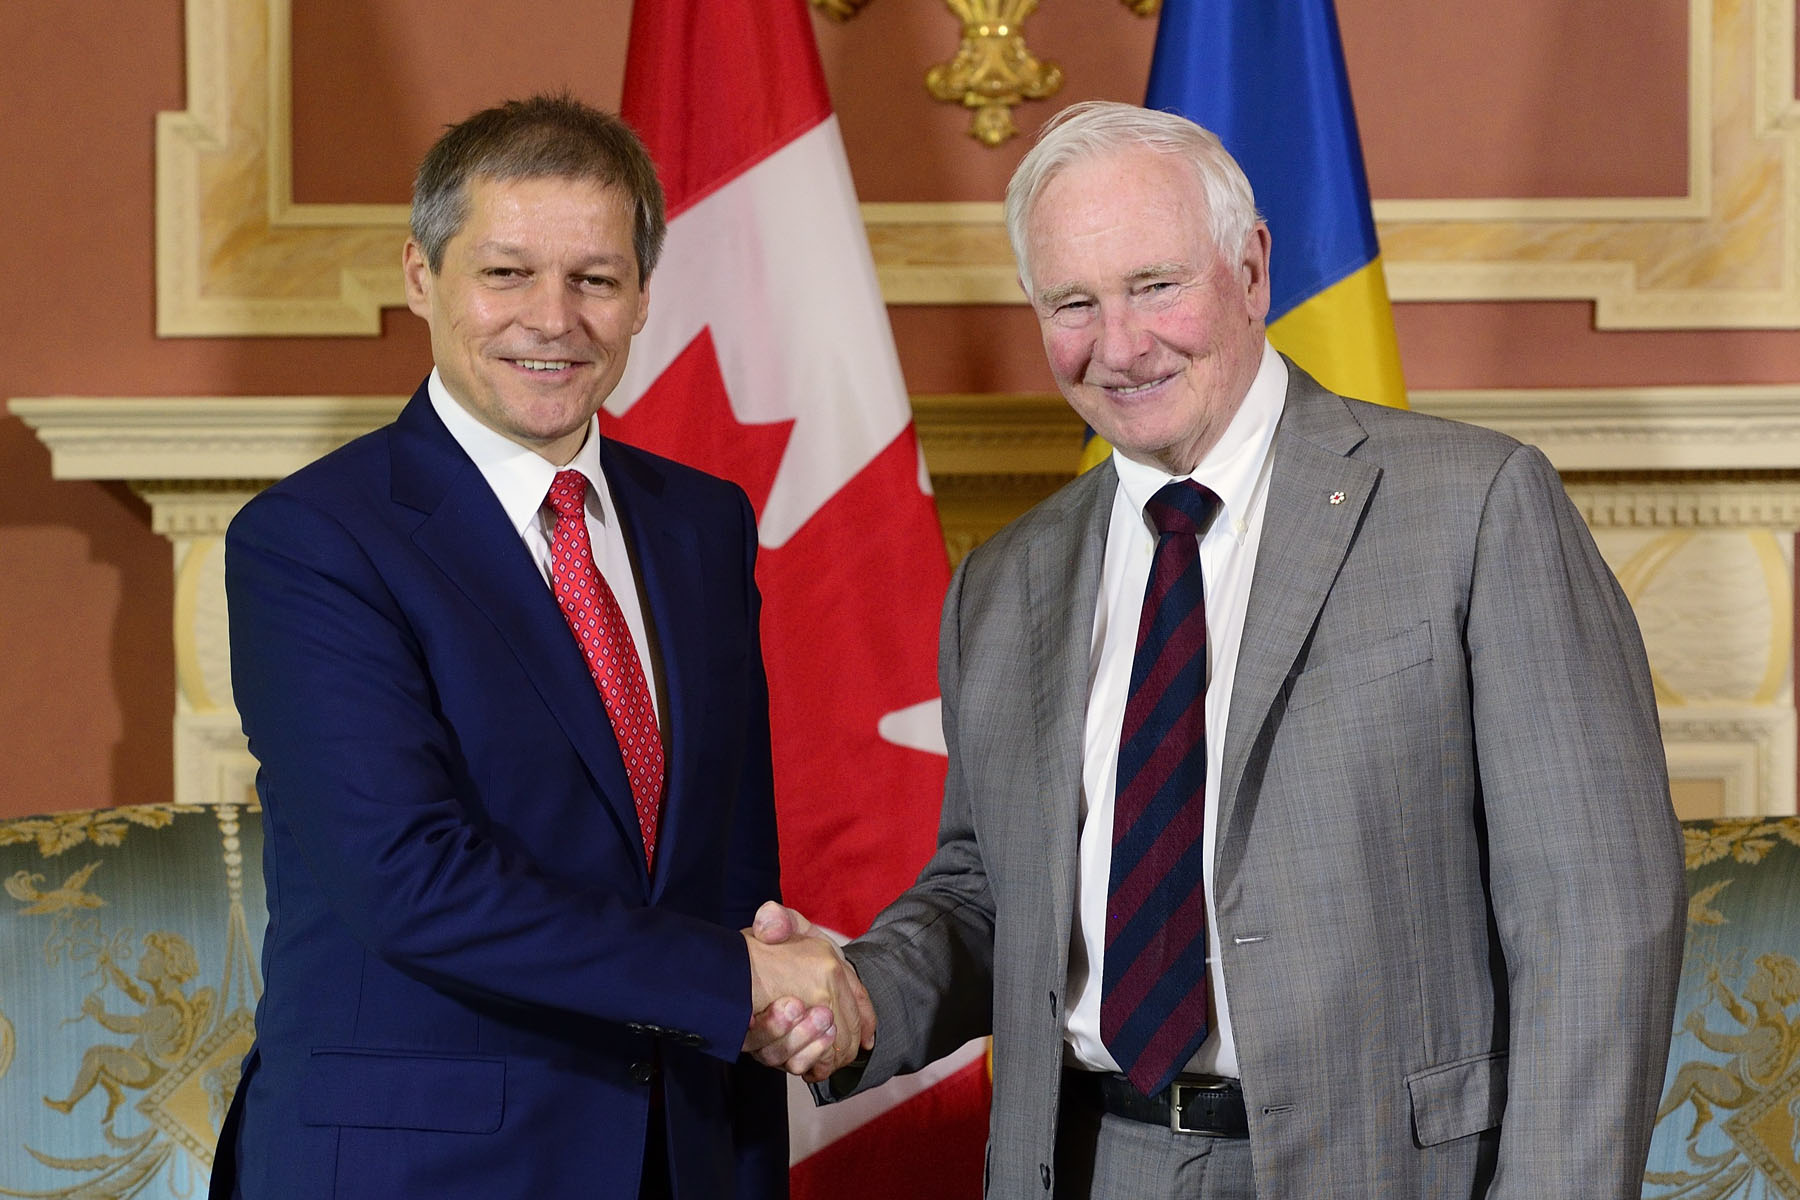 On June 15, 2016, His Excellency the Right Honourable David Johnston, Governor General of Canada, met with His Excellency Dacian Ciolos, Prime Minister of Romania.